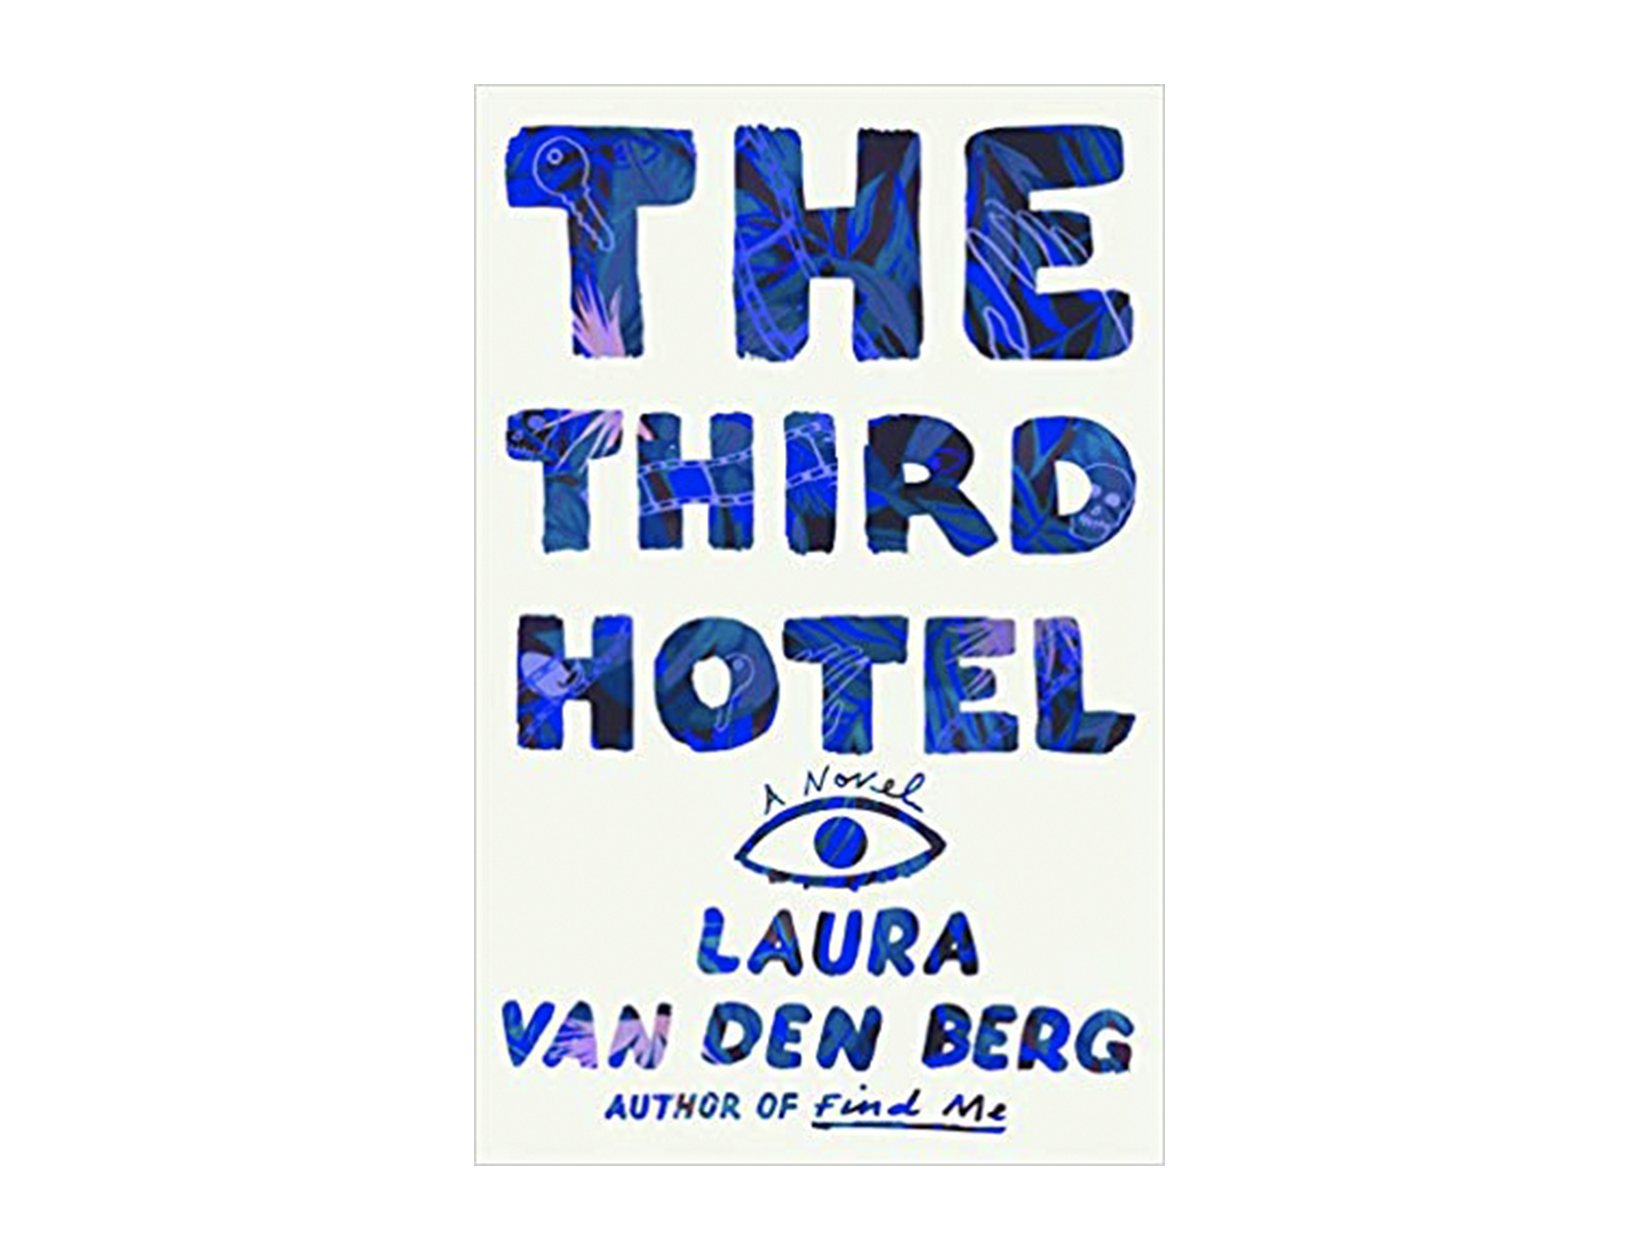 <em>The Third Hotel</em> by Laura van den Berg